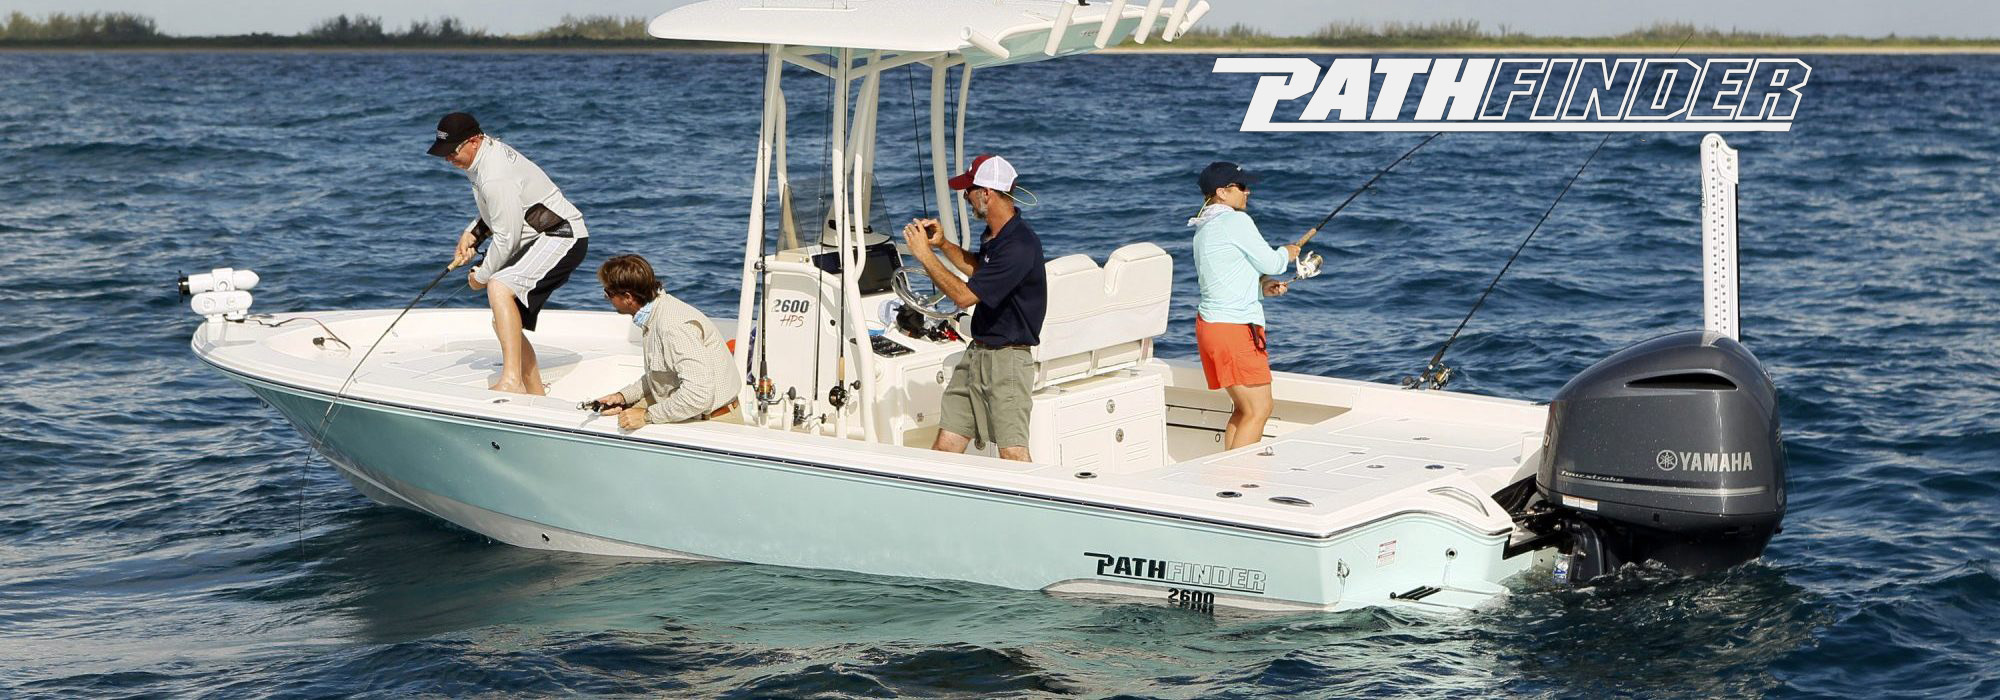 Pathfinder 2600 open water fishing